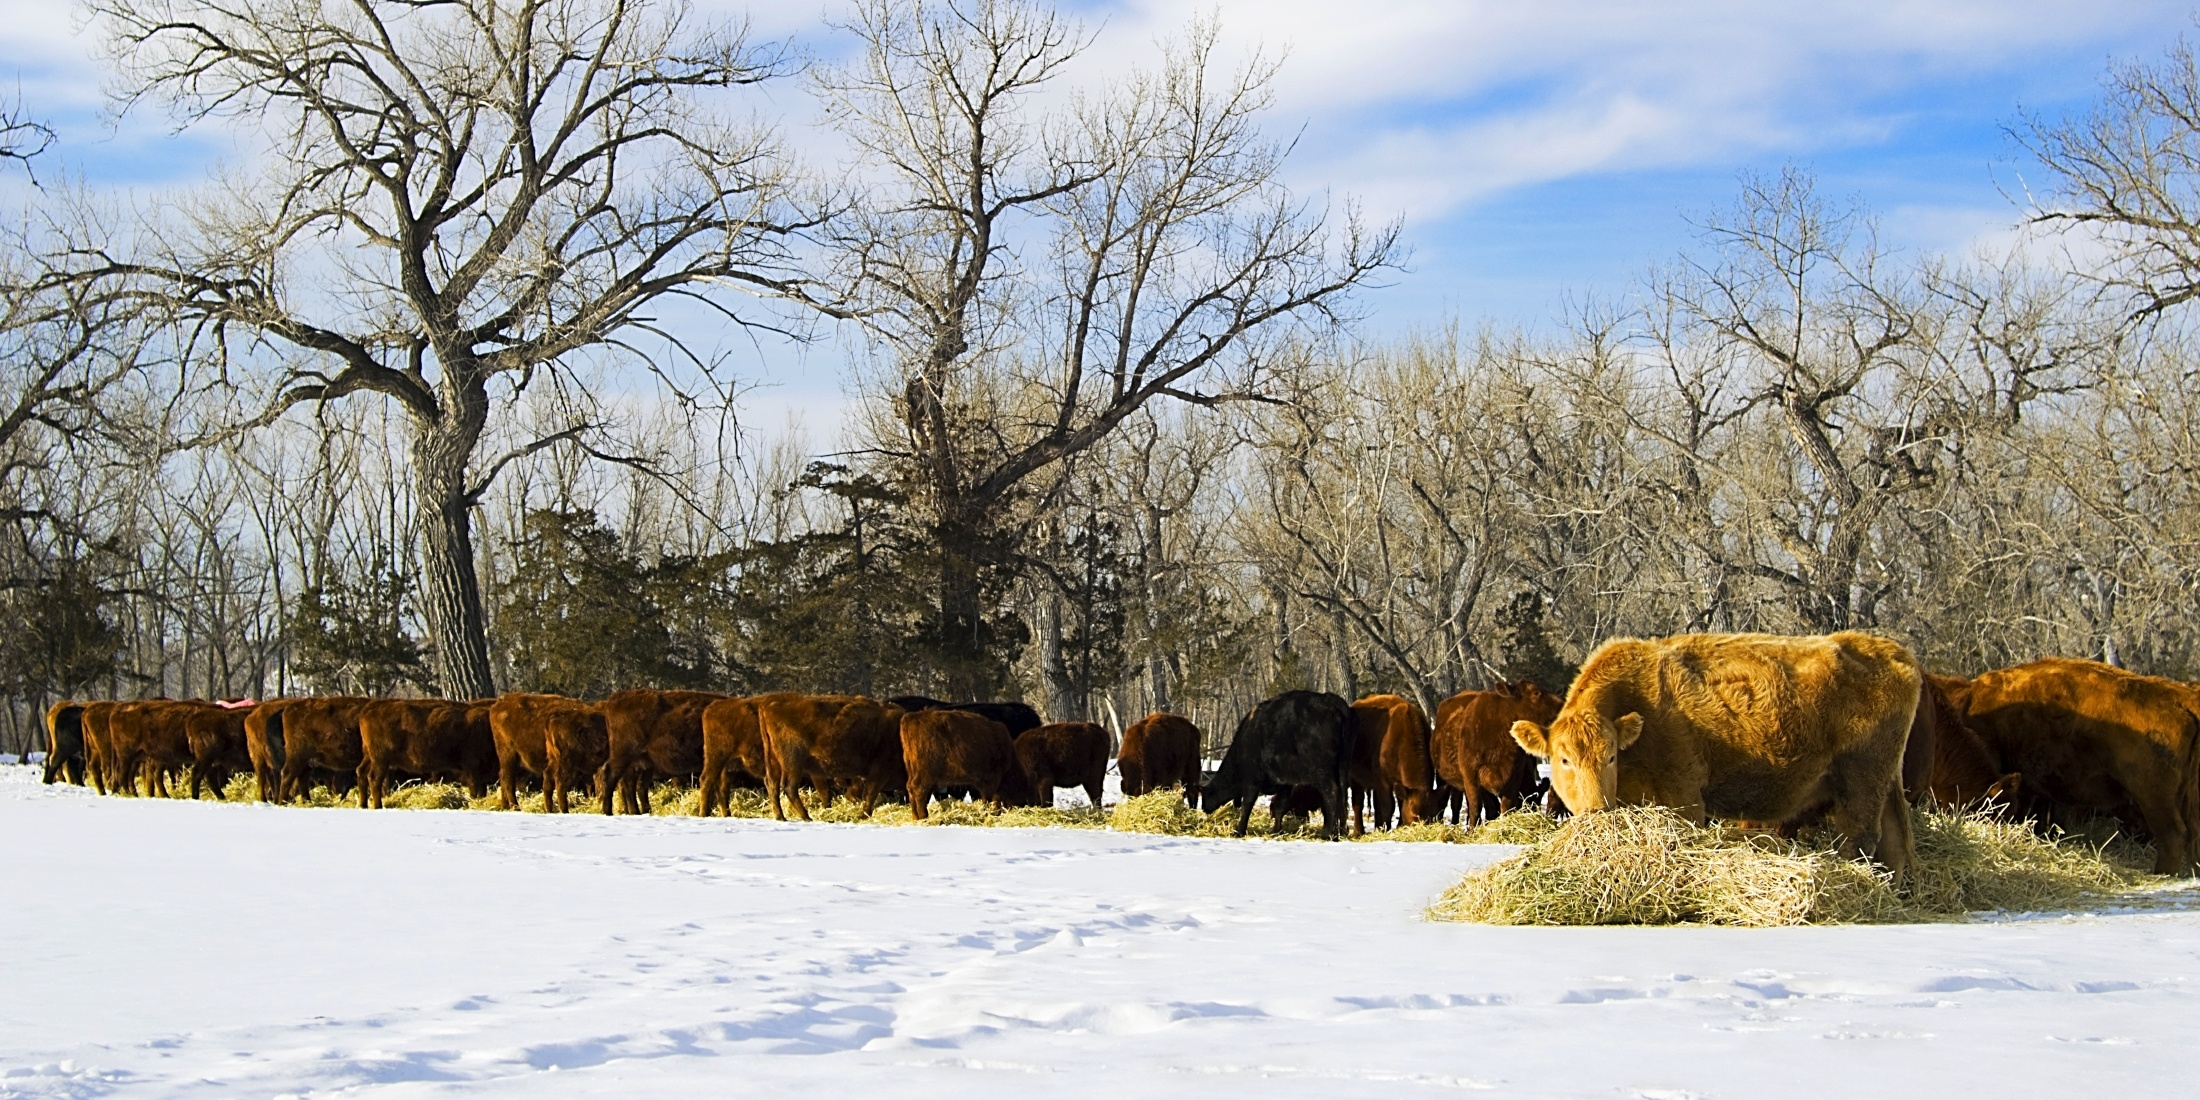 cattle feeding guide-240872-edited.jpg